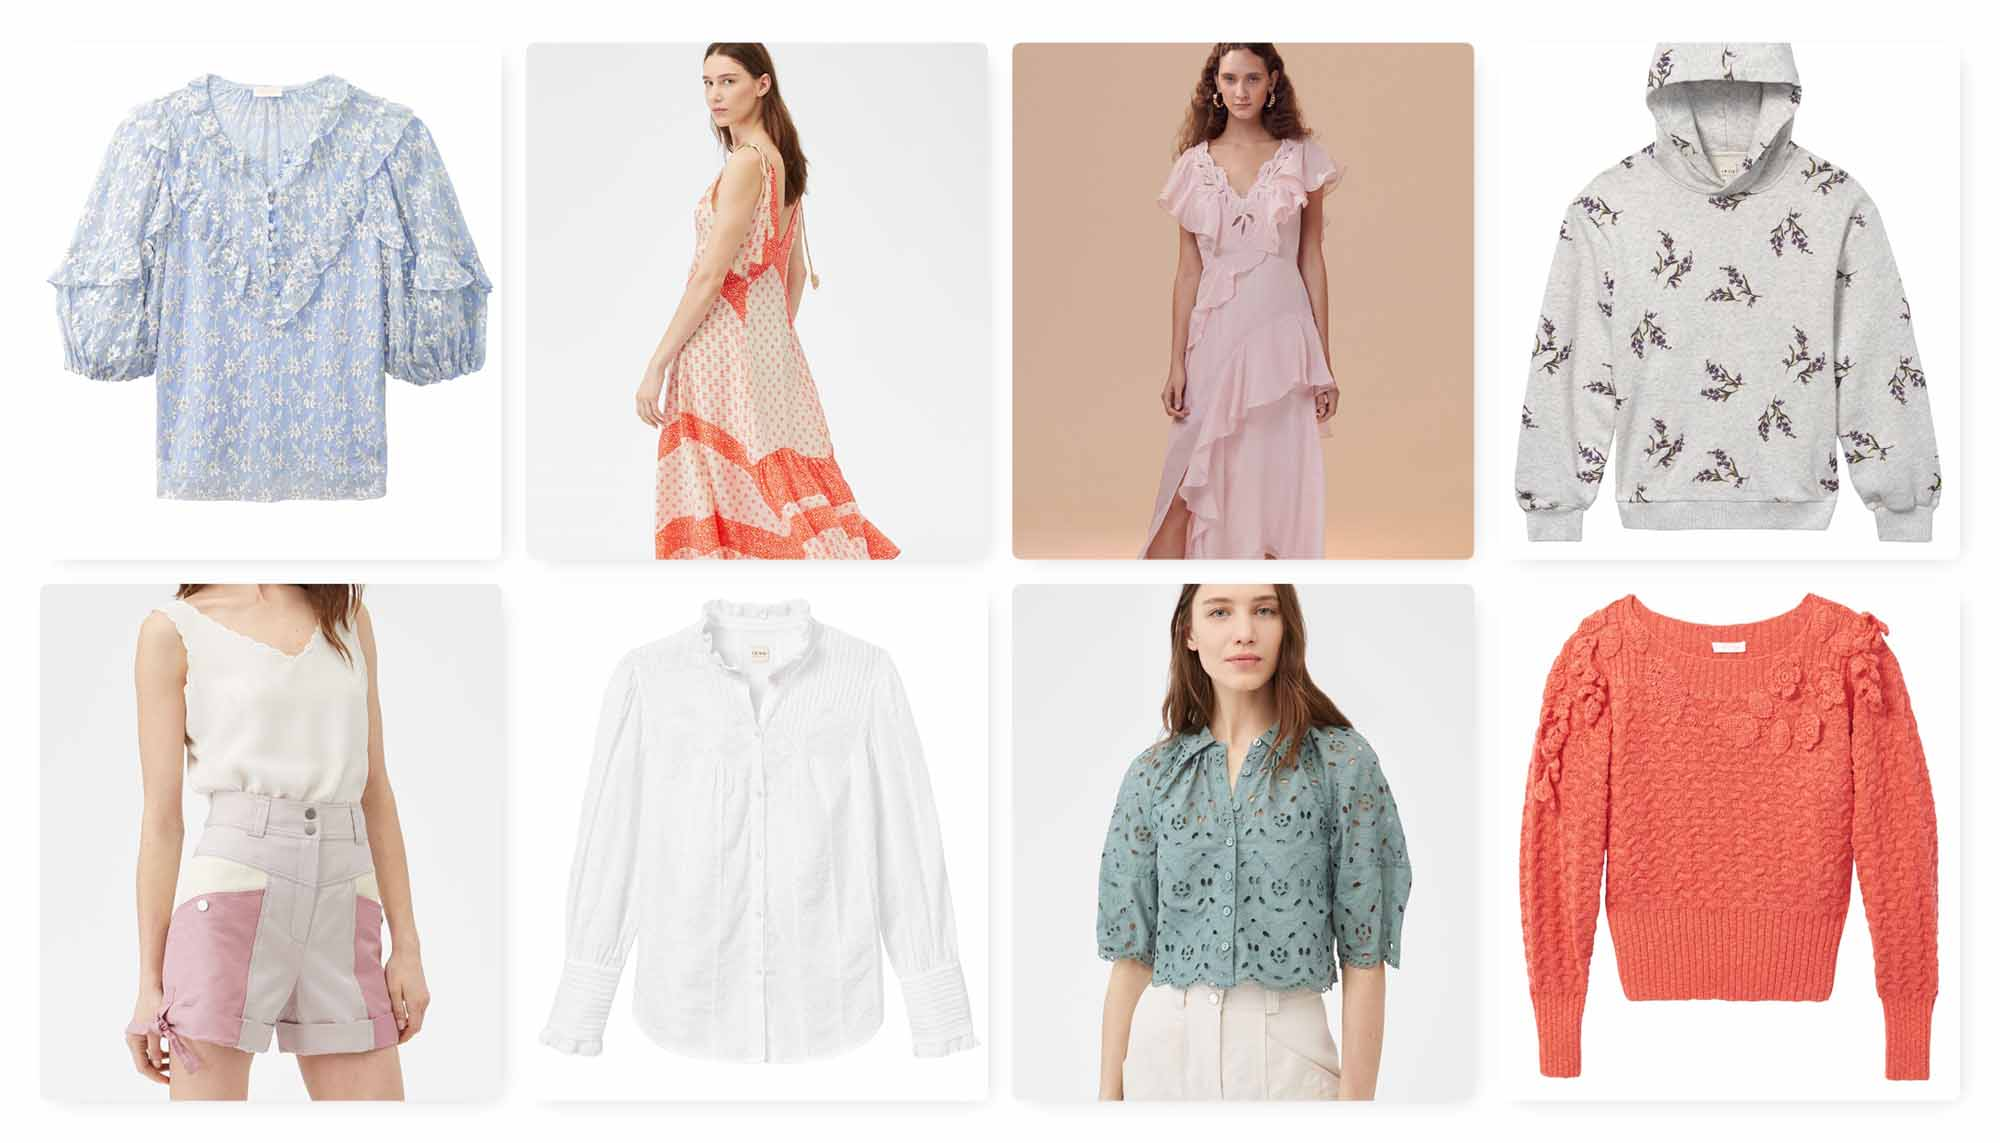 Rebecca Taylor Spring 2020 Pastels:  Chic & Comfy for WFH